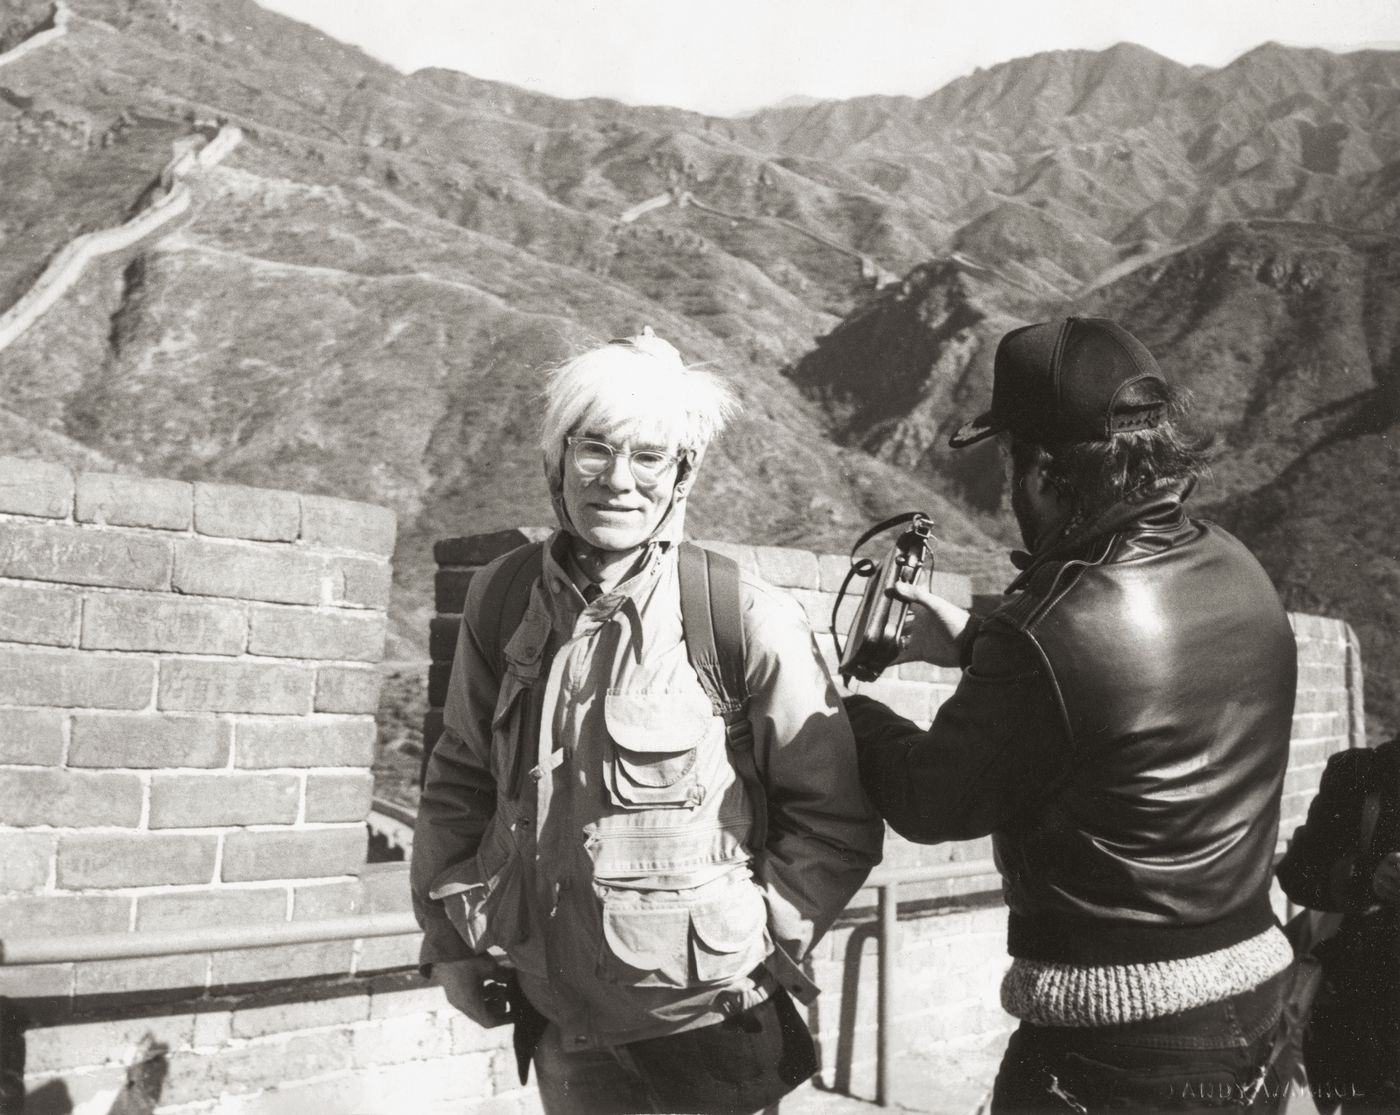 Warhol's first impression of China's greatest monument gave way to a unique collection of photographs, coming to auction this month.